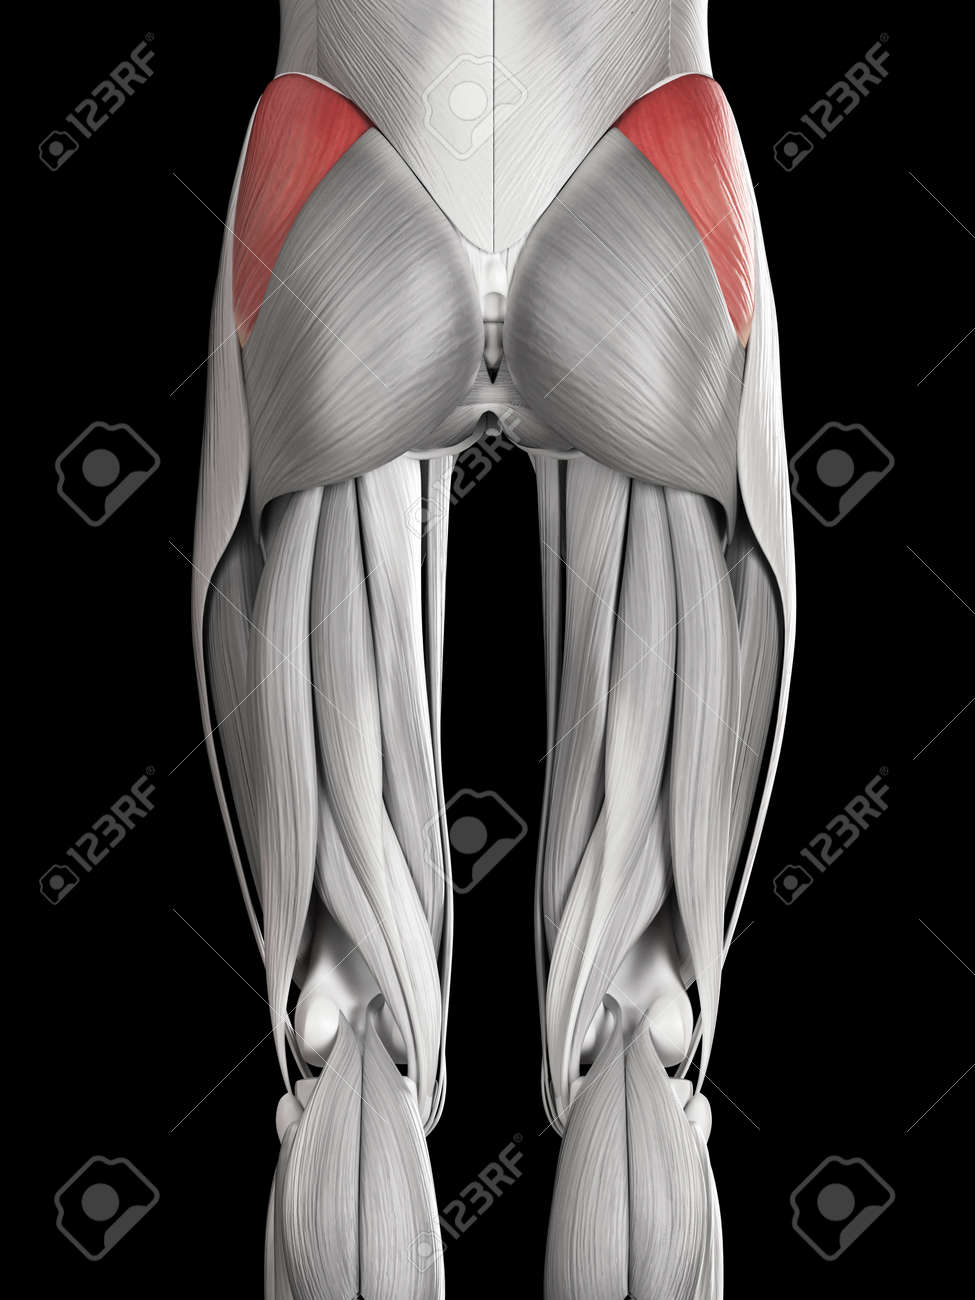 Human Muscle Anatomy - Gluteus Medius Stock Photo, Picture And ...